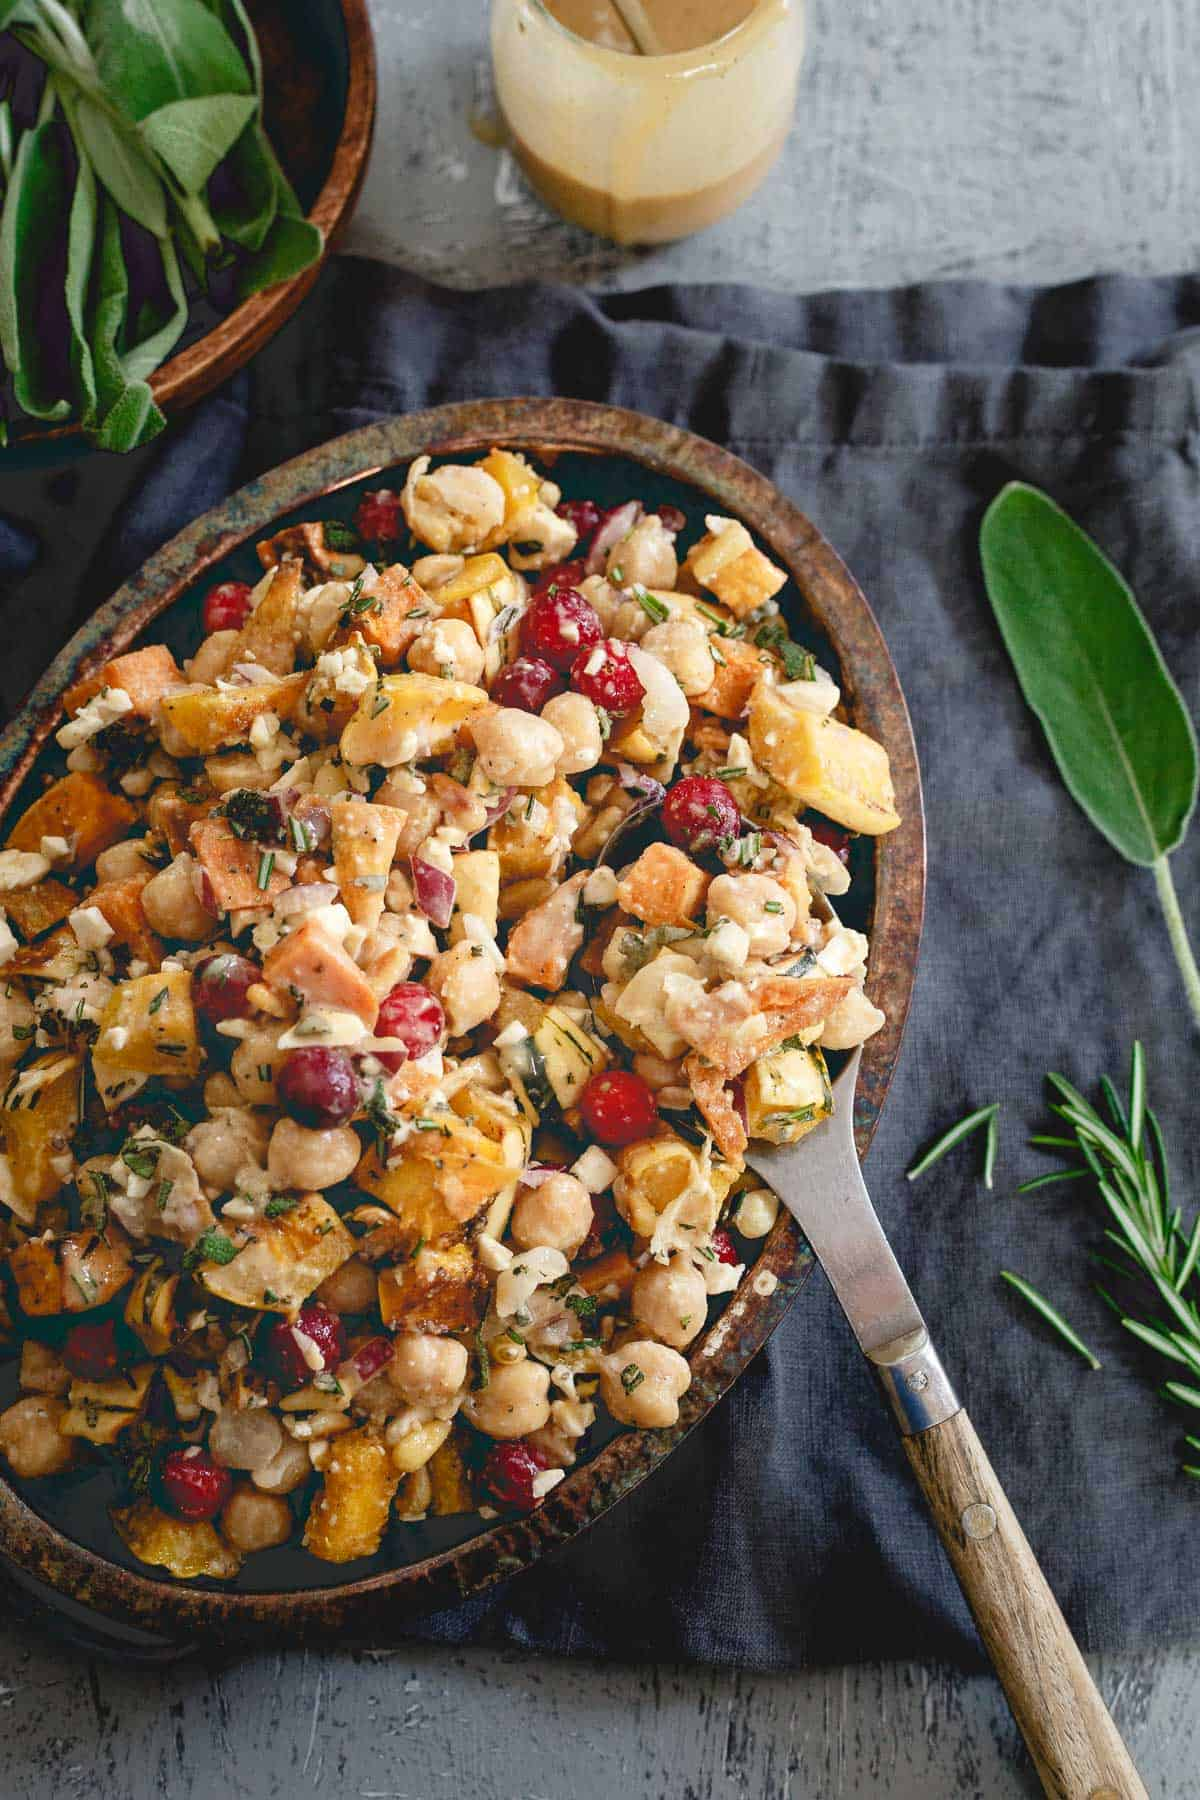 This salad has it all - roasted sweet potatoes, squash, chickpeas, cranberries, feta and a maple tahini dressing for a hearty fall dish packed with flavor.